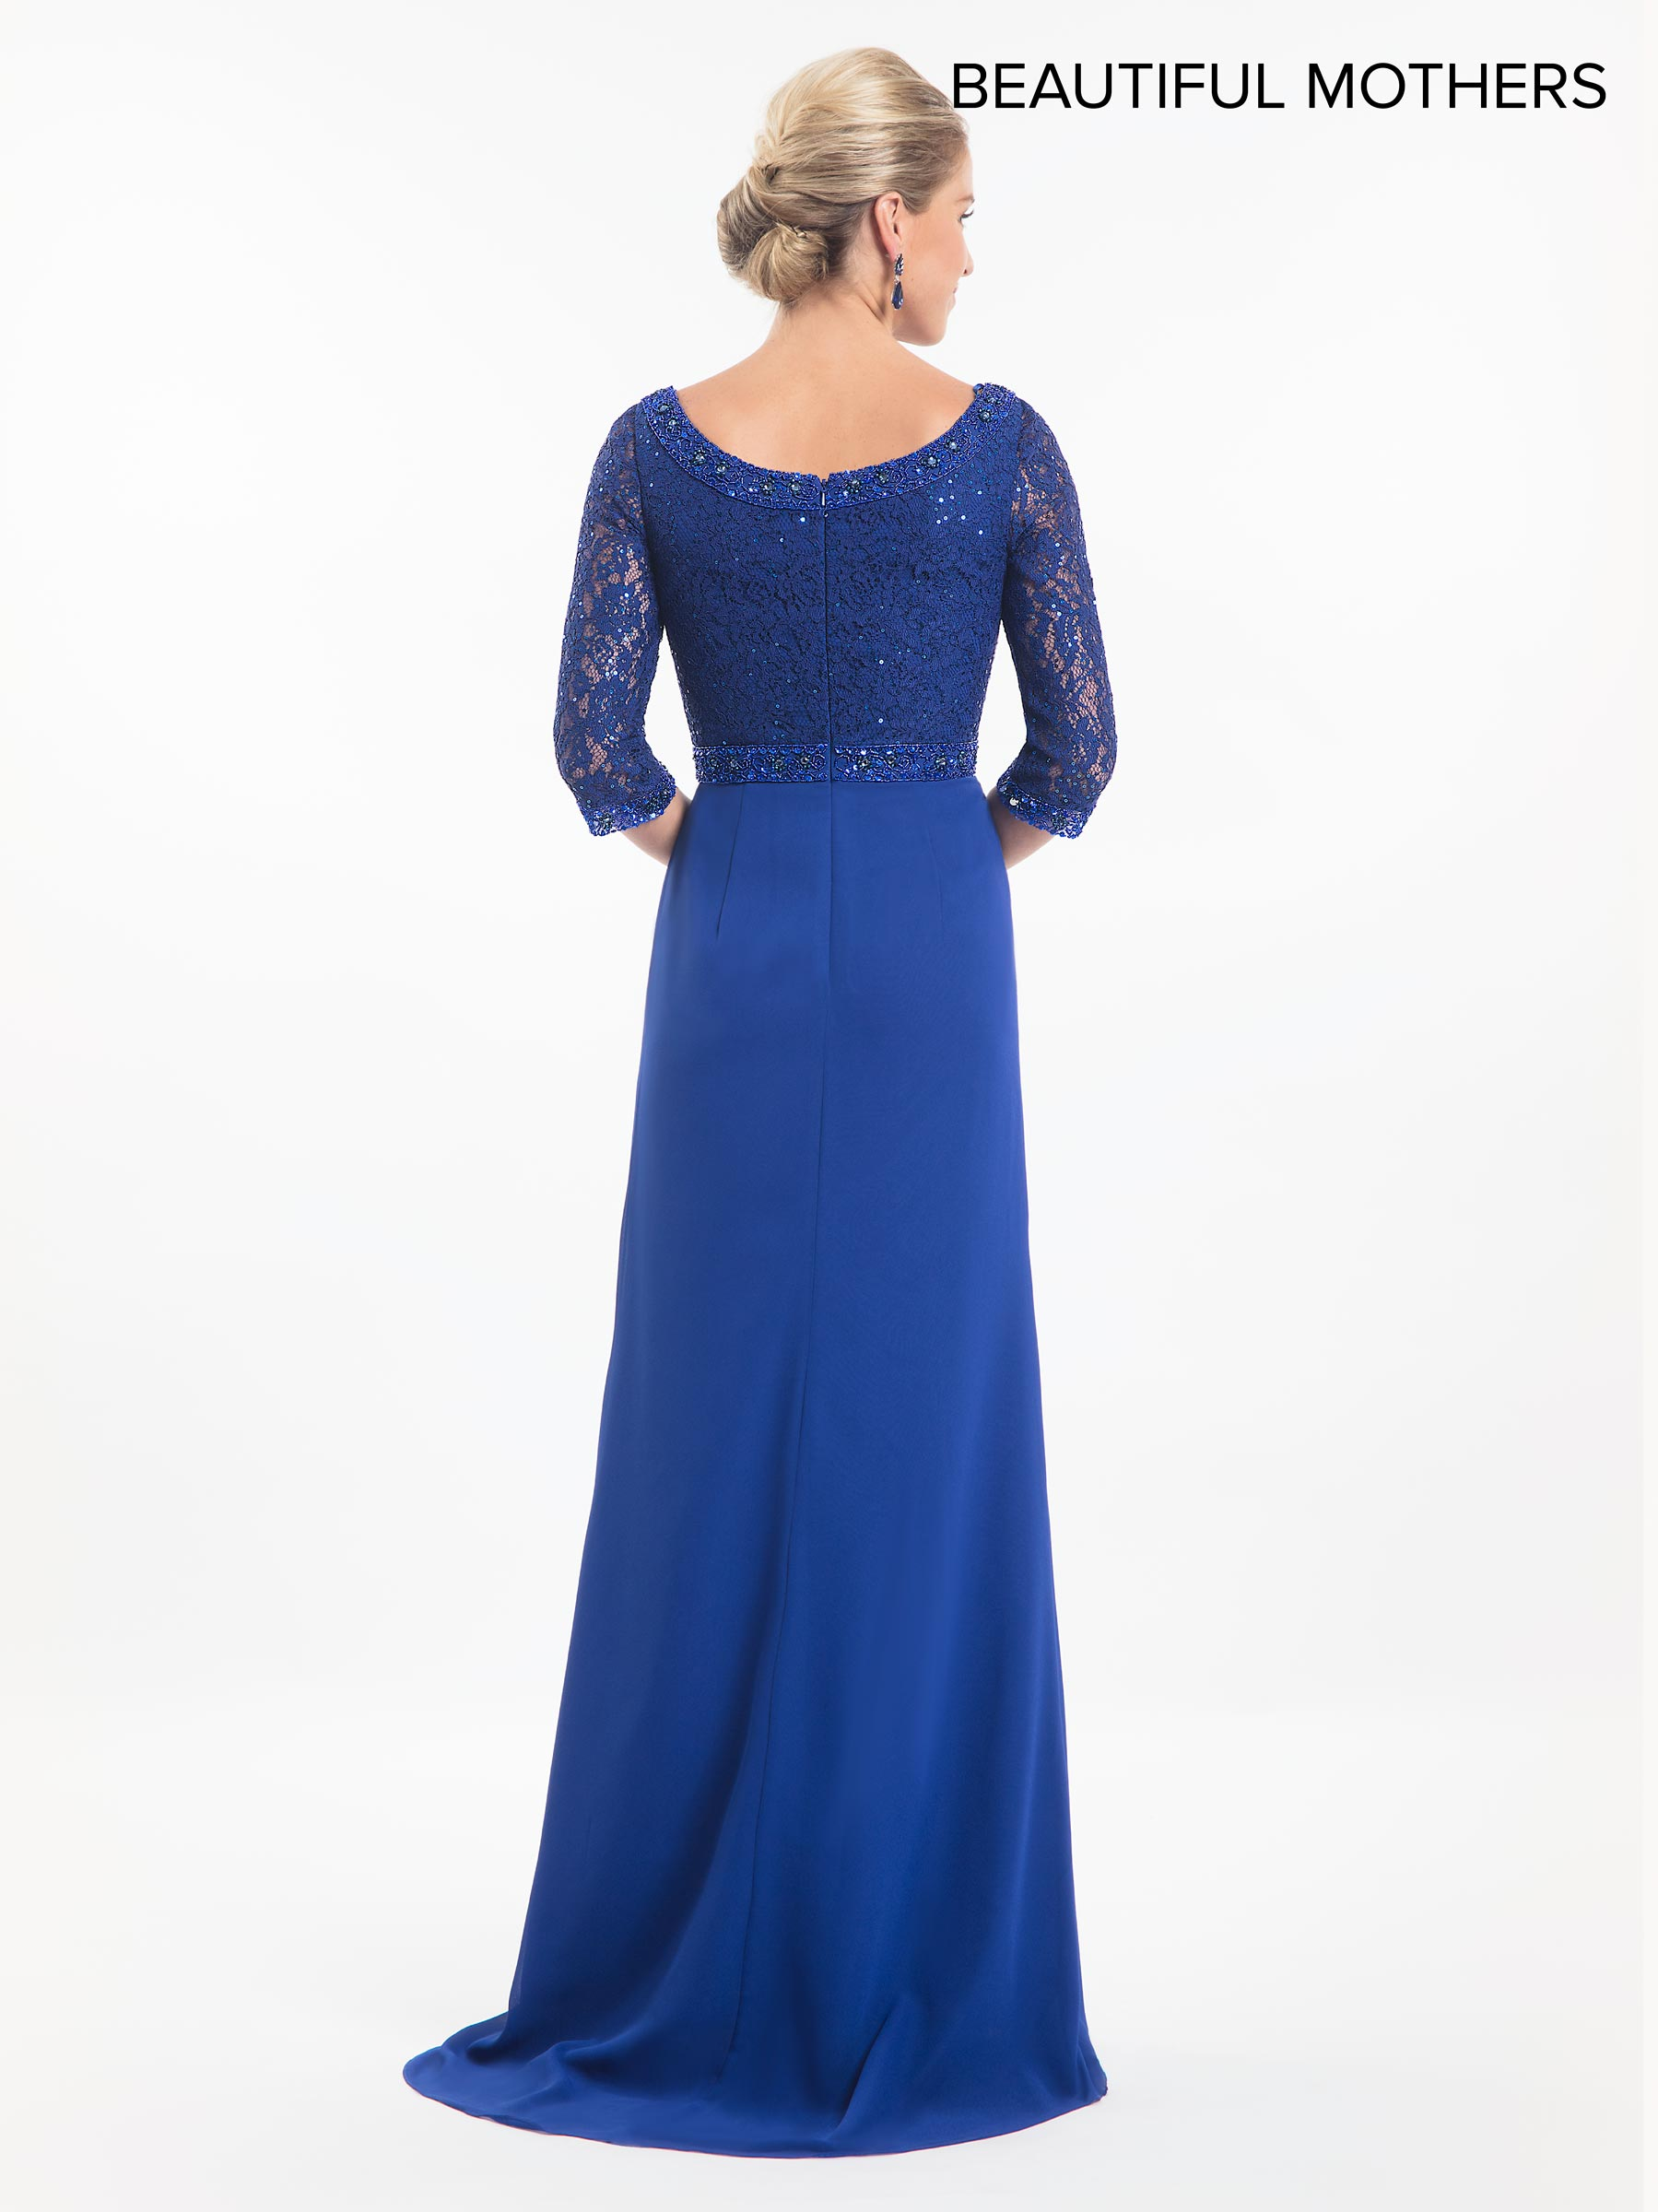 Mother Of The Bride Dresses | Beautiful Mothers | Style - MB8016